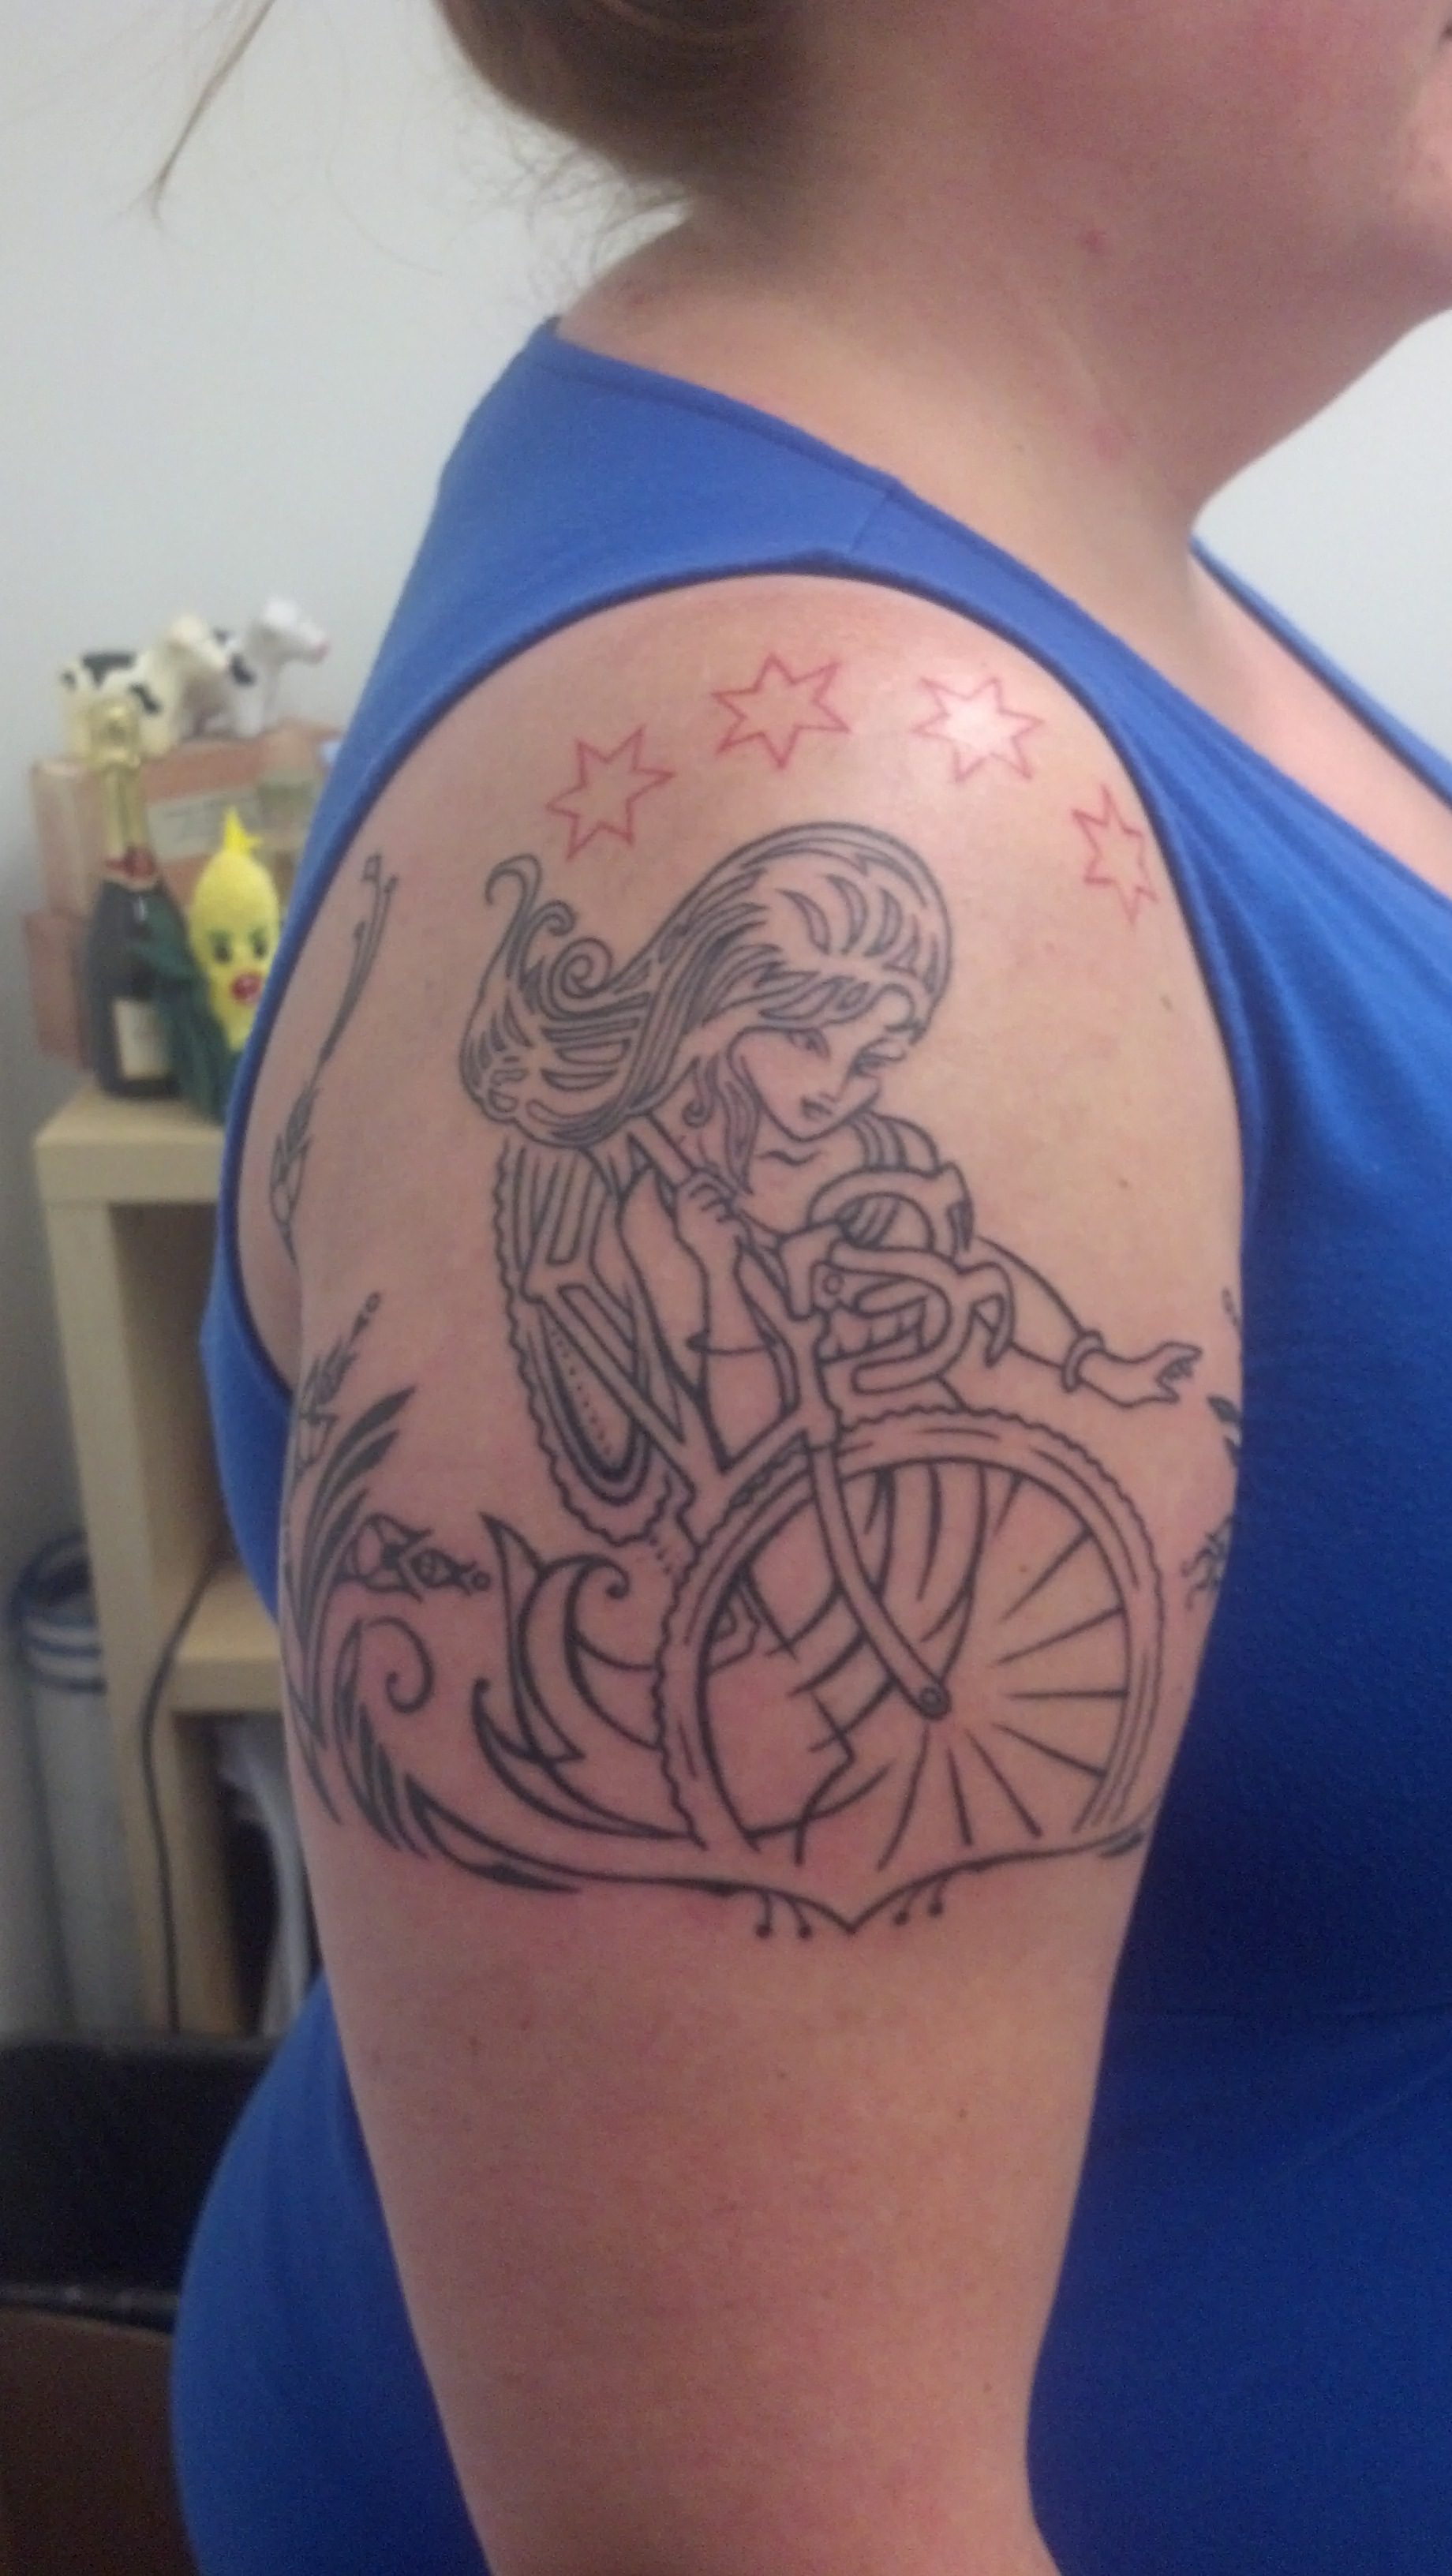 Chicago Cycling Tattoo Accidentally Jewish